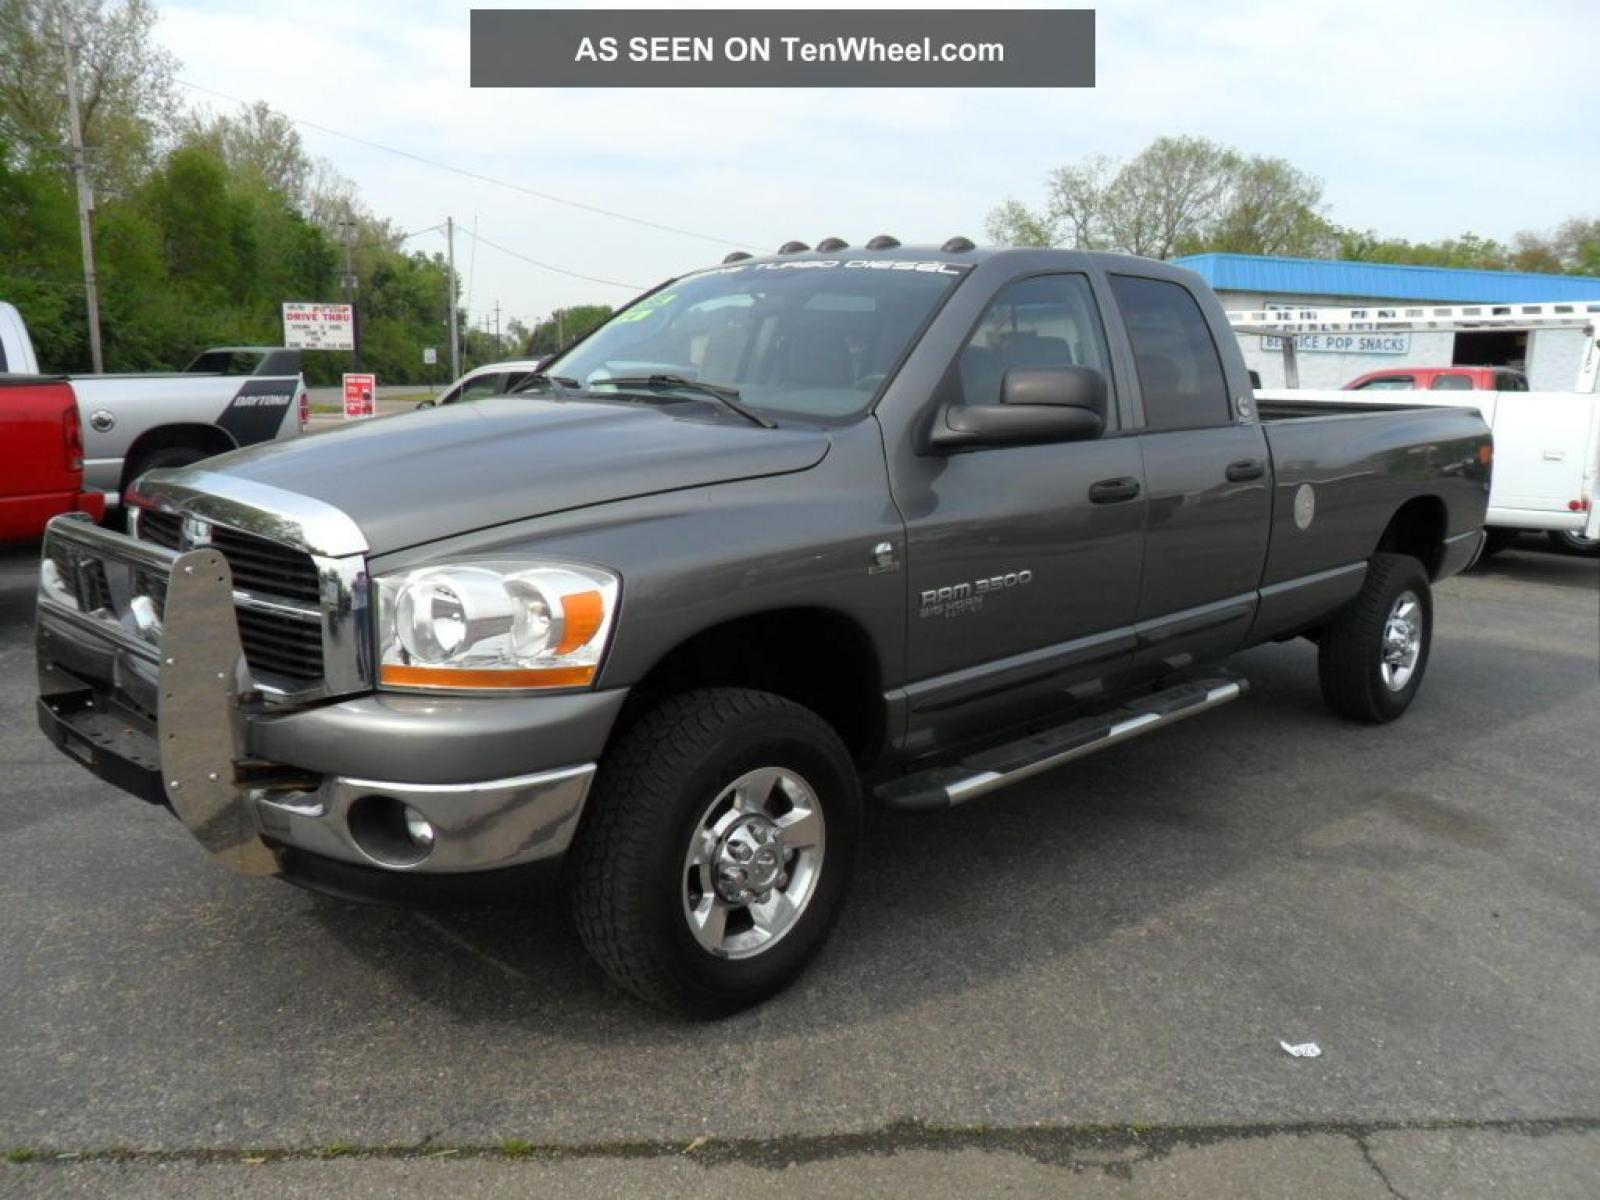 2006 Dodge Ram Pickup 3500 Information and photos ZombieDrive